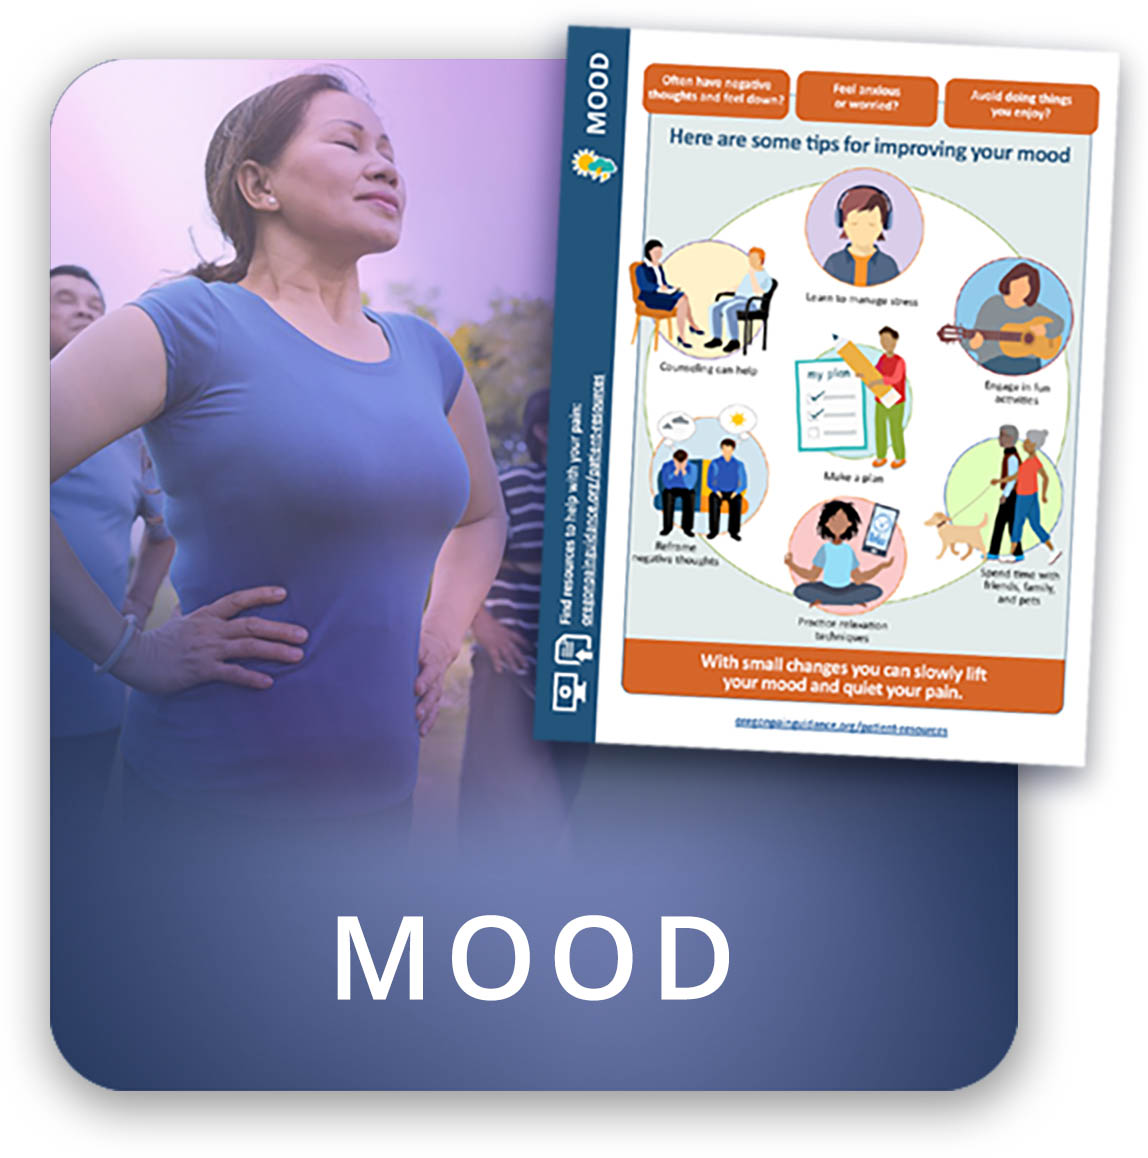 Understand the role that mood plays in your pain